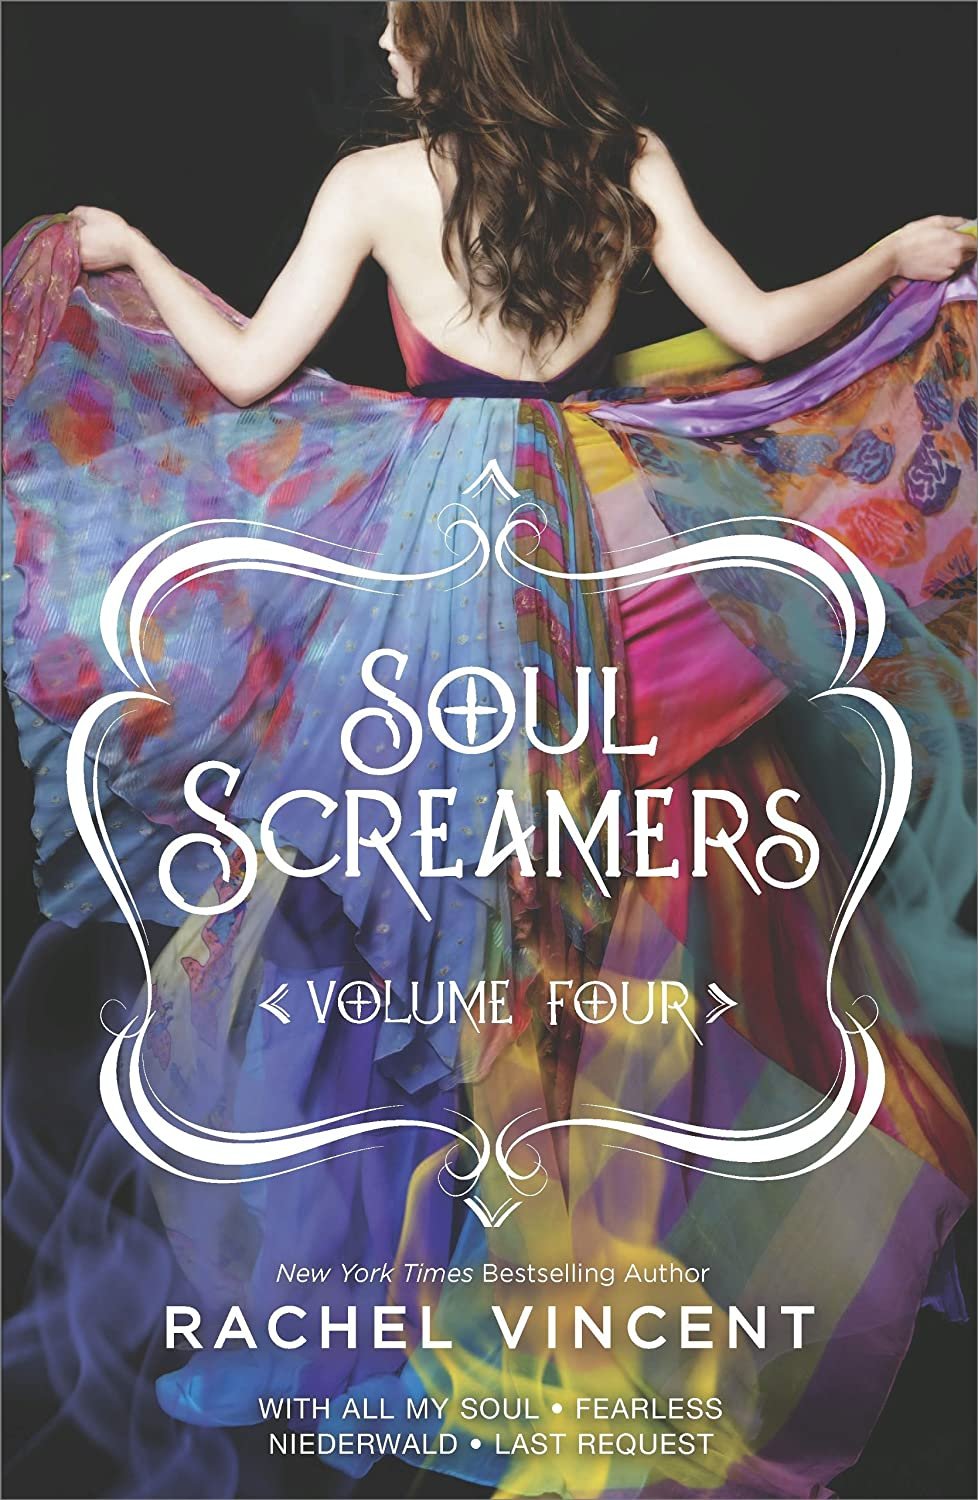 The cover of Soul Screamers: Volume Four